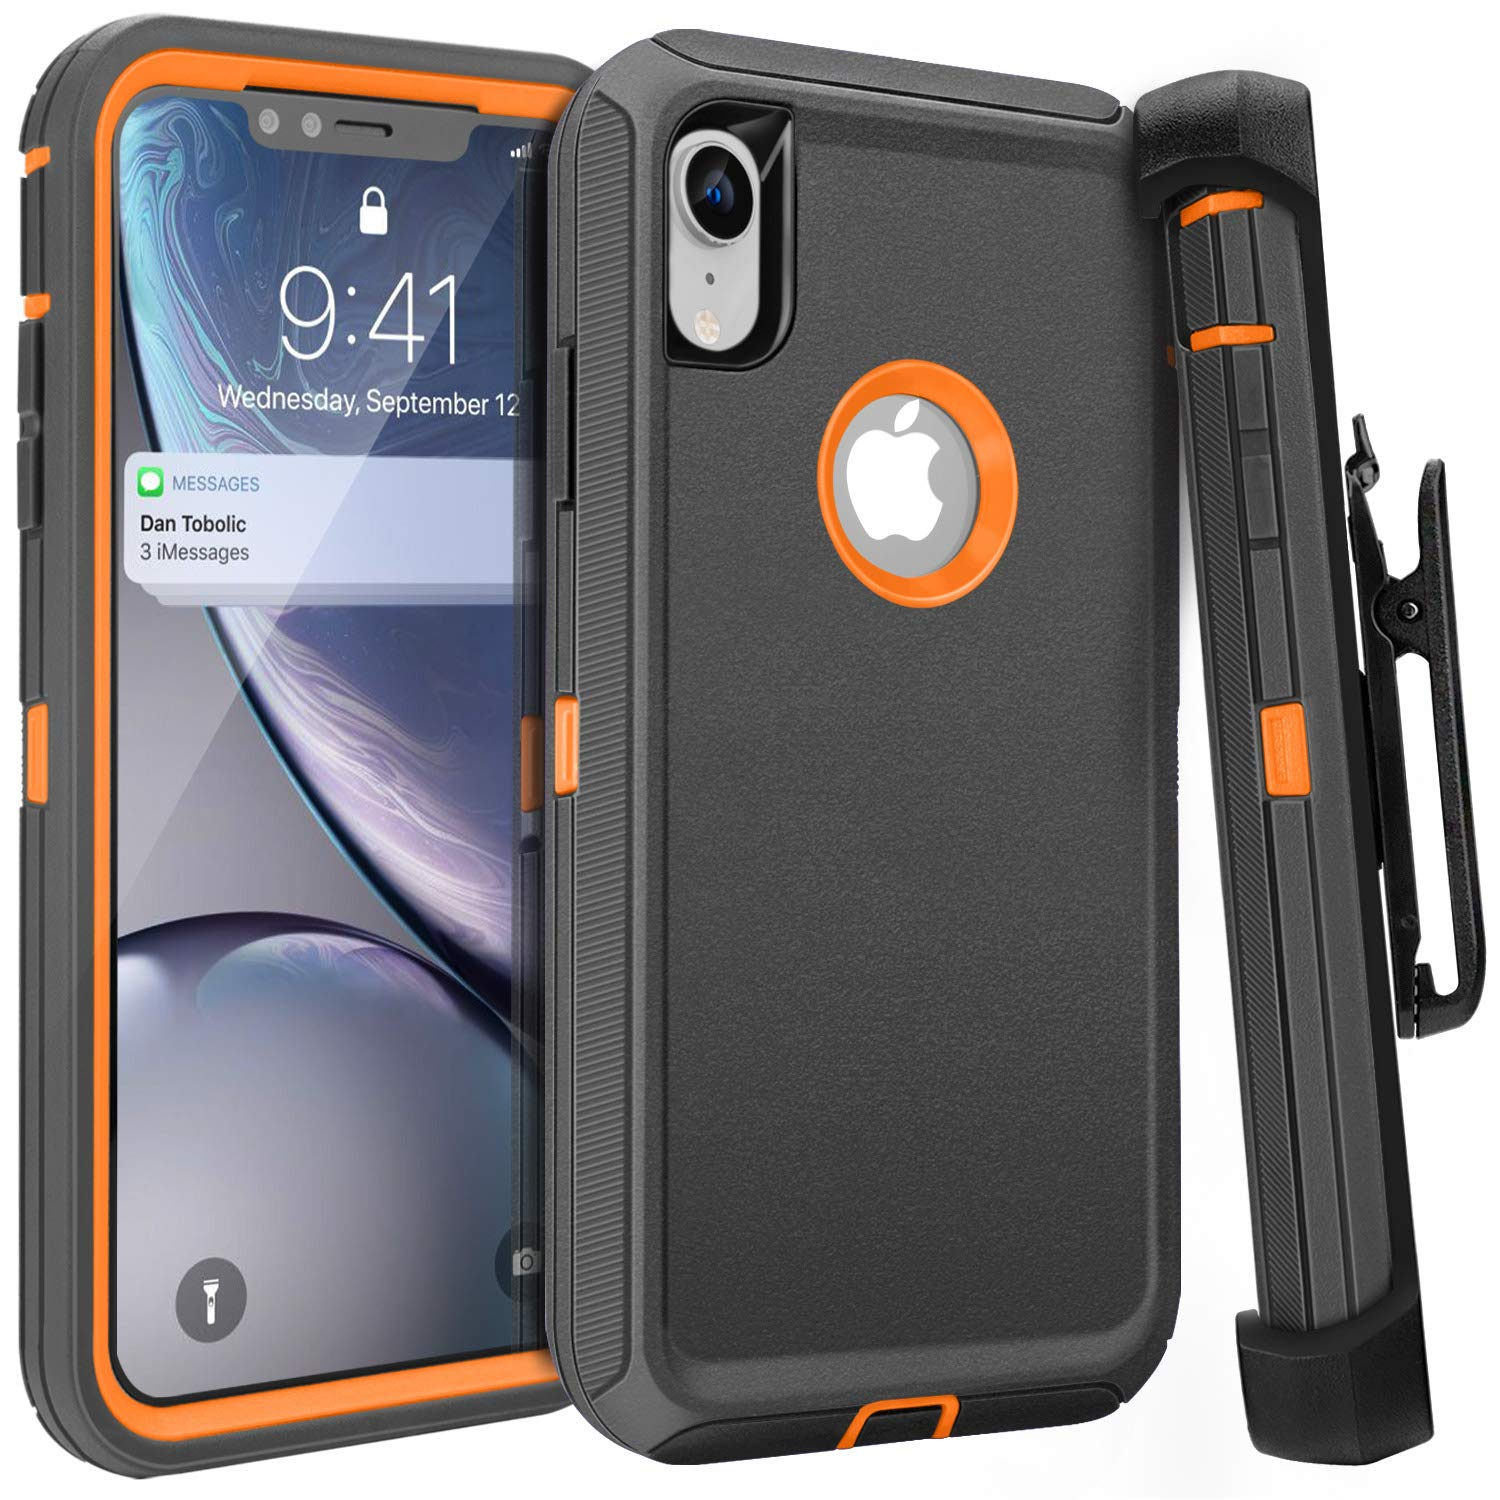 FOGEEK iPhone XR Case, Belt Clip Holster Heavy Duty Kickstand Protective Cover [Dust-Proof] [Shockproof] Compatible for Apple iPhone XR [6.1 inch] (Dark Grey/Orange) by FOGEEK